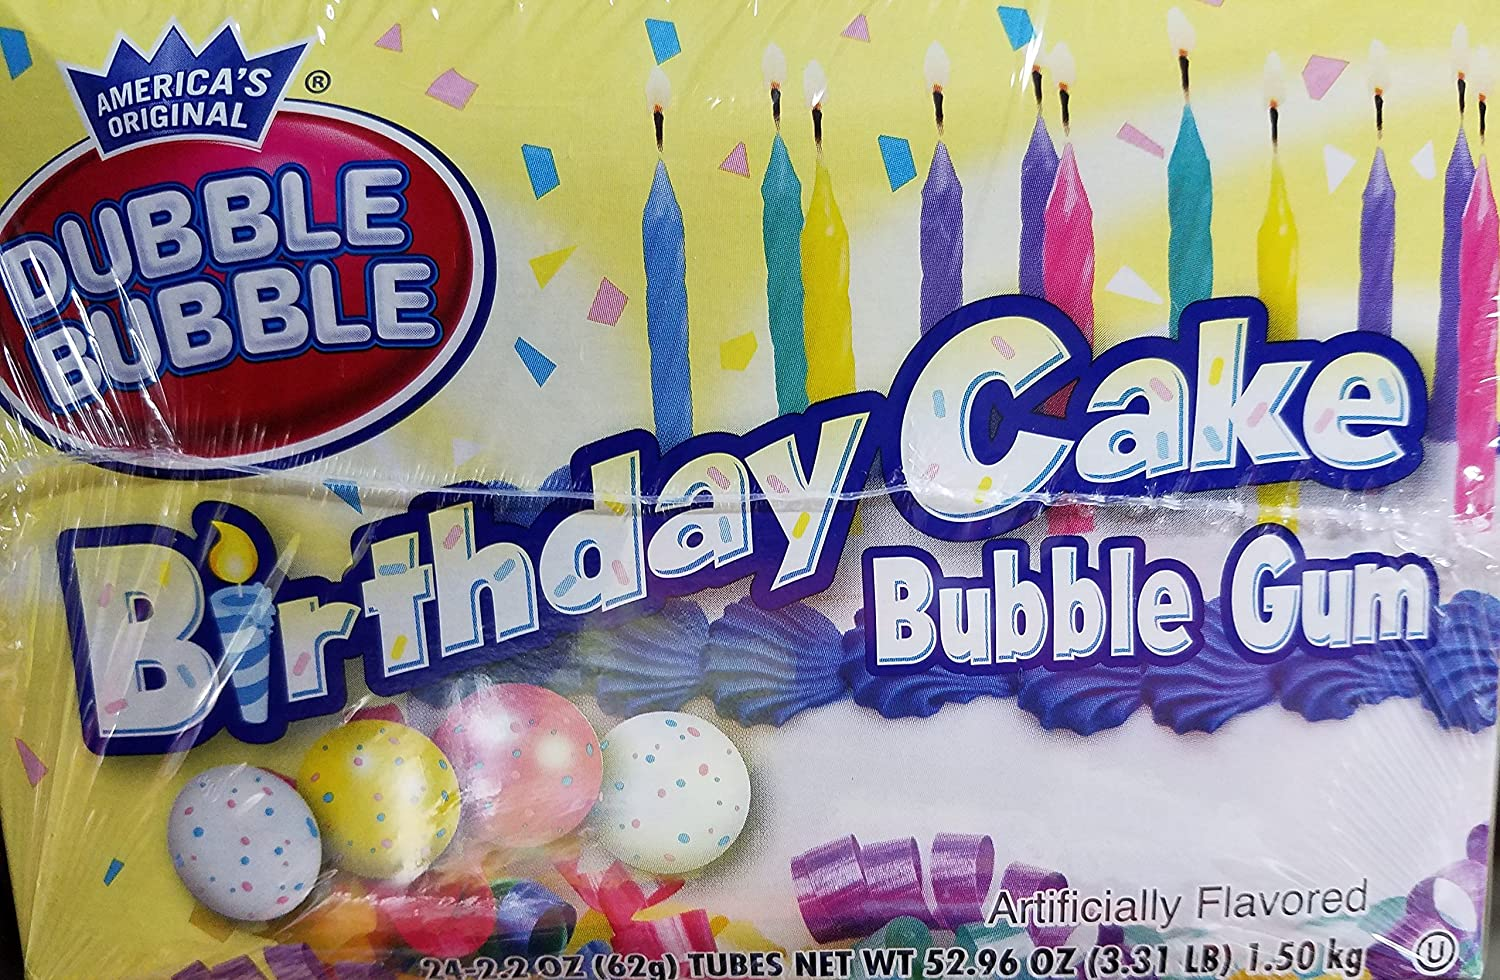 Dubble Bubble Birthday Cake 24 Count Boston Mall Challenge the lowest price of Japan Gum